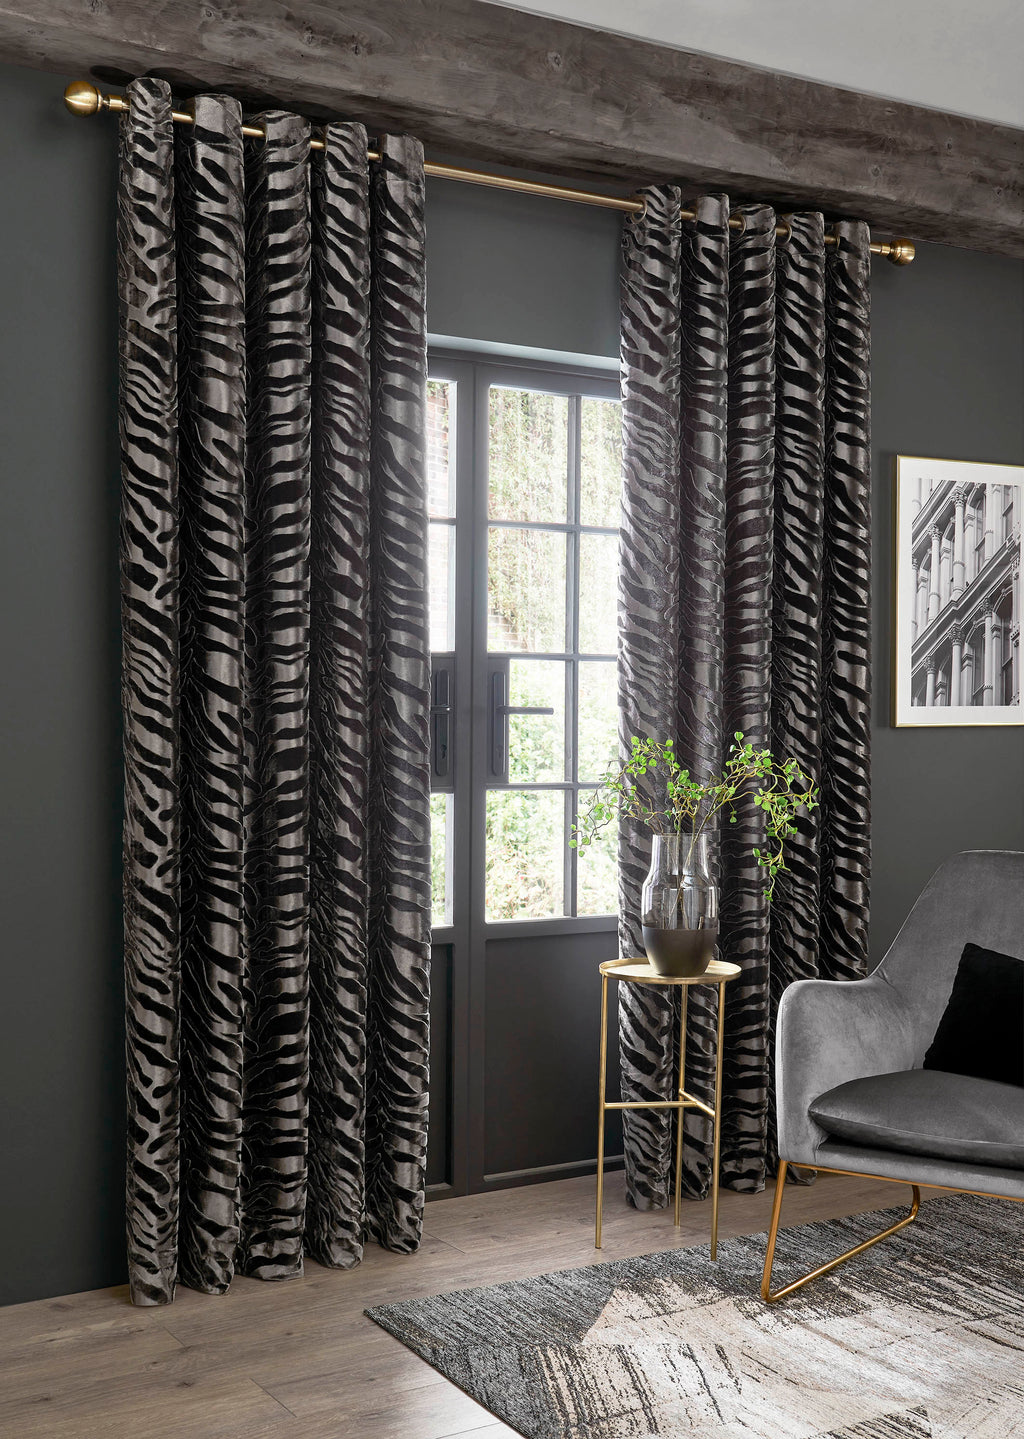 Ashley Wilde Jovan Lined Eyelet Curtains (ORDER ONLY)